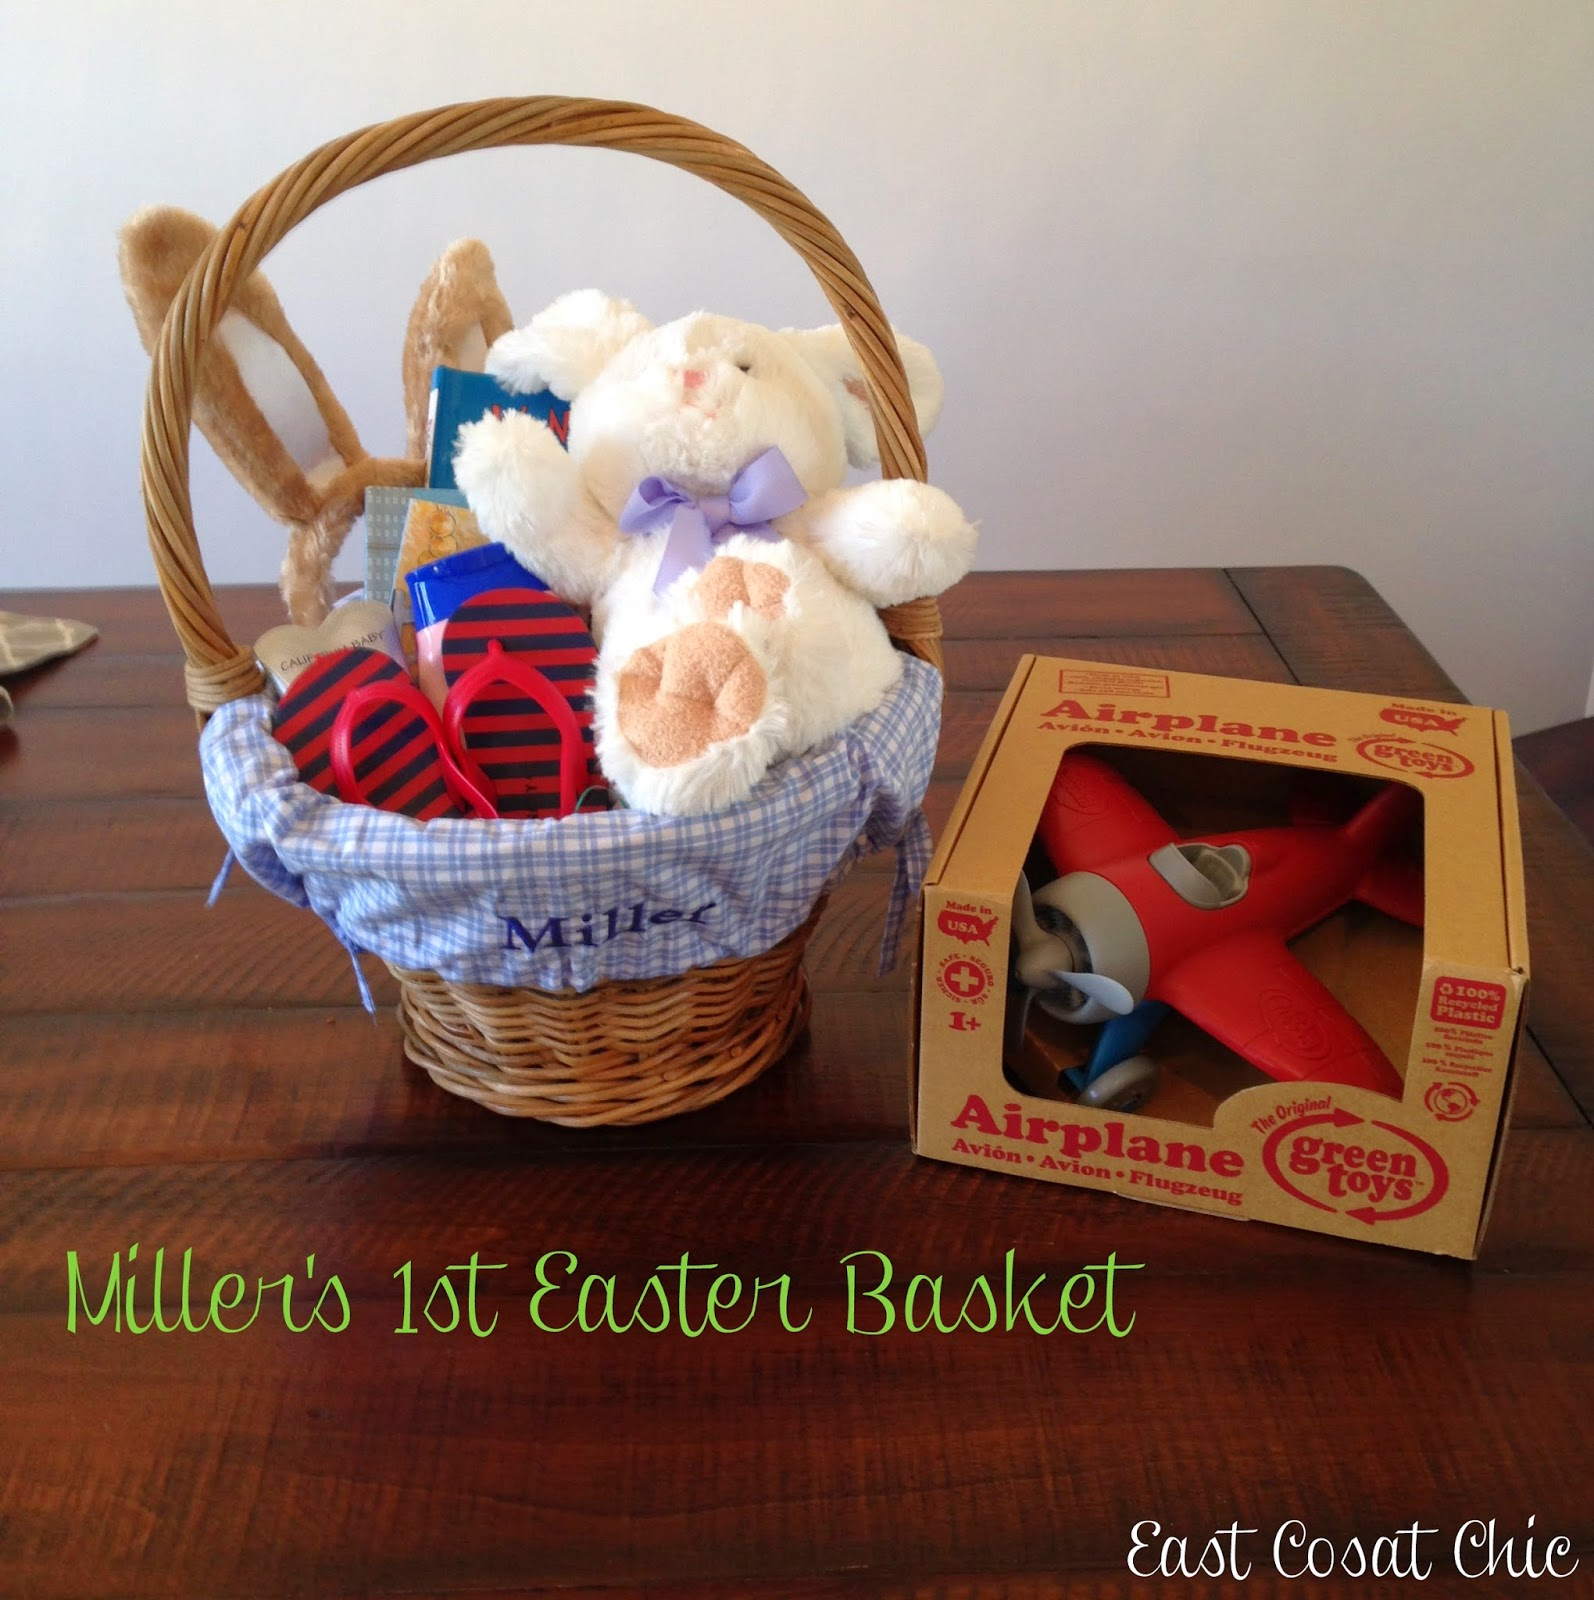 Millers 1st easter basket east coast chic i opted for the small basket from pottery barn kids and had the liner monogrammed obviously the basket is a little smaller than i thought it would be but negle Images